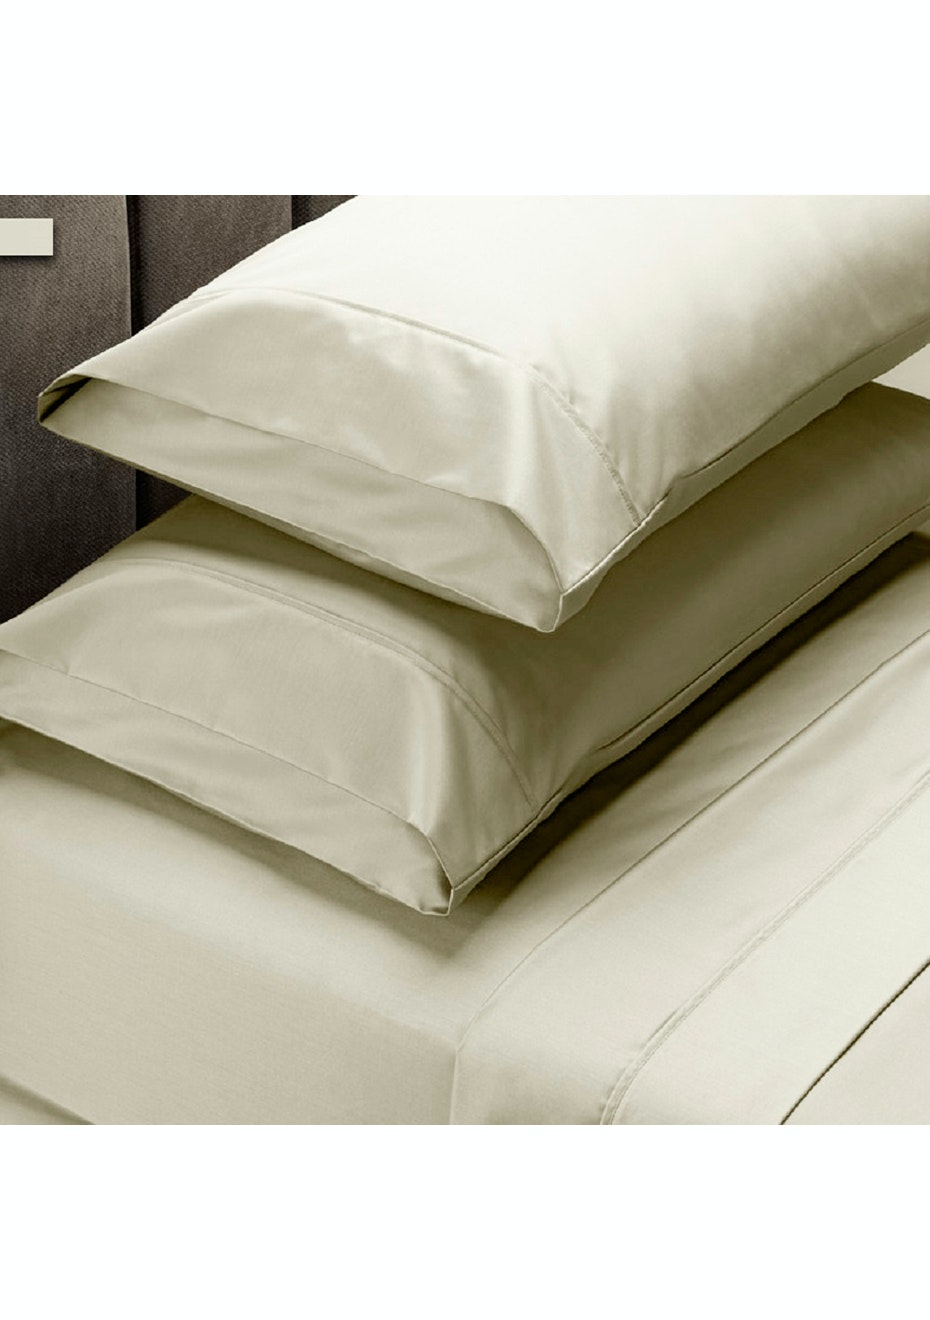 Park Avenue 1000 Thread count 100% Egyptian Cotton Sheet sets King - Birch